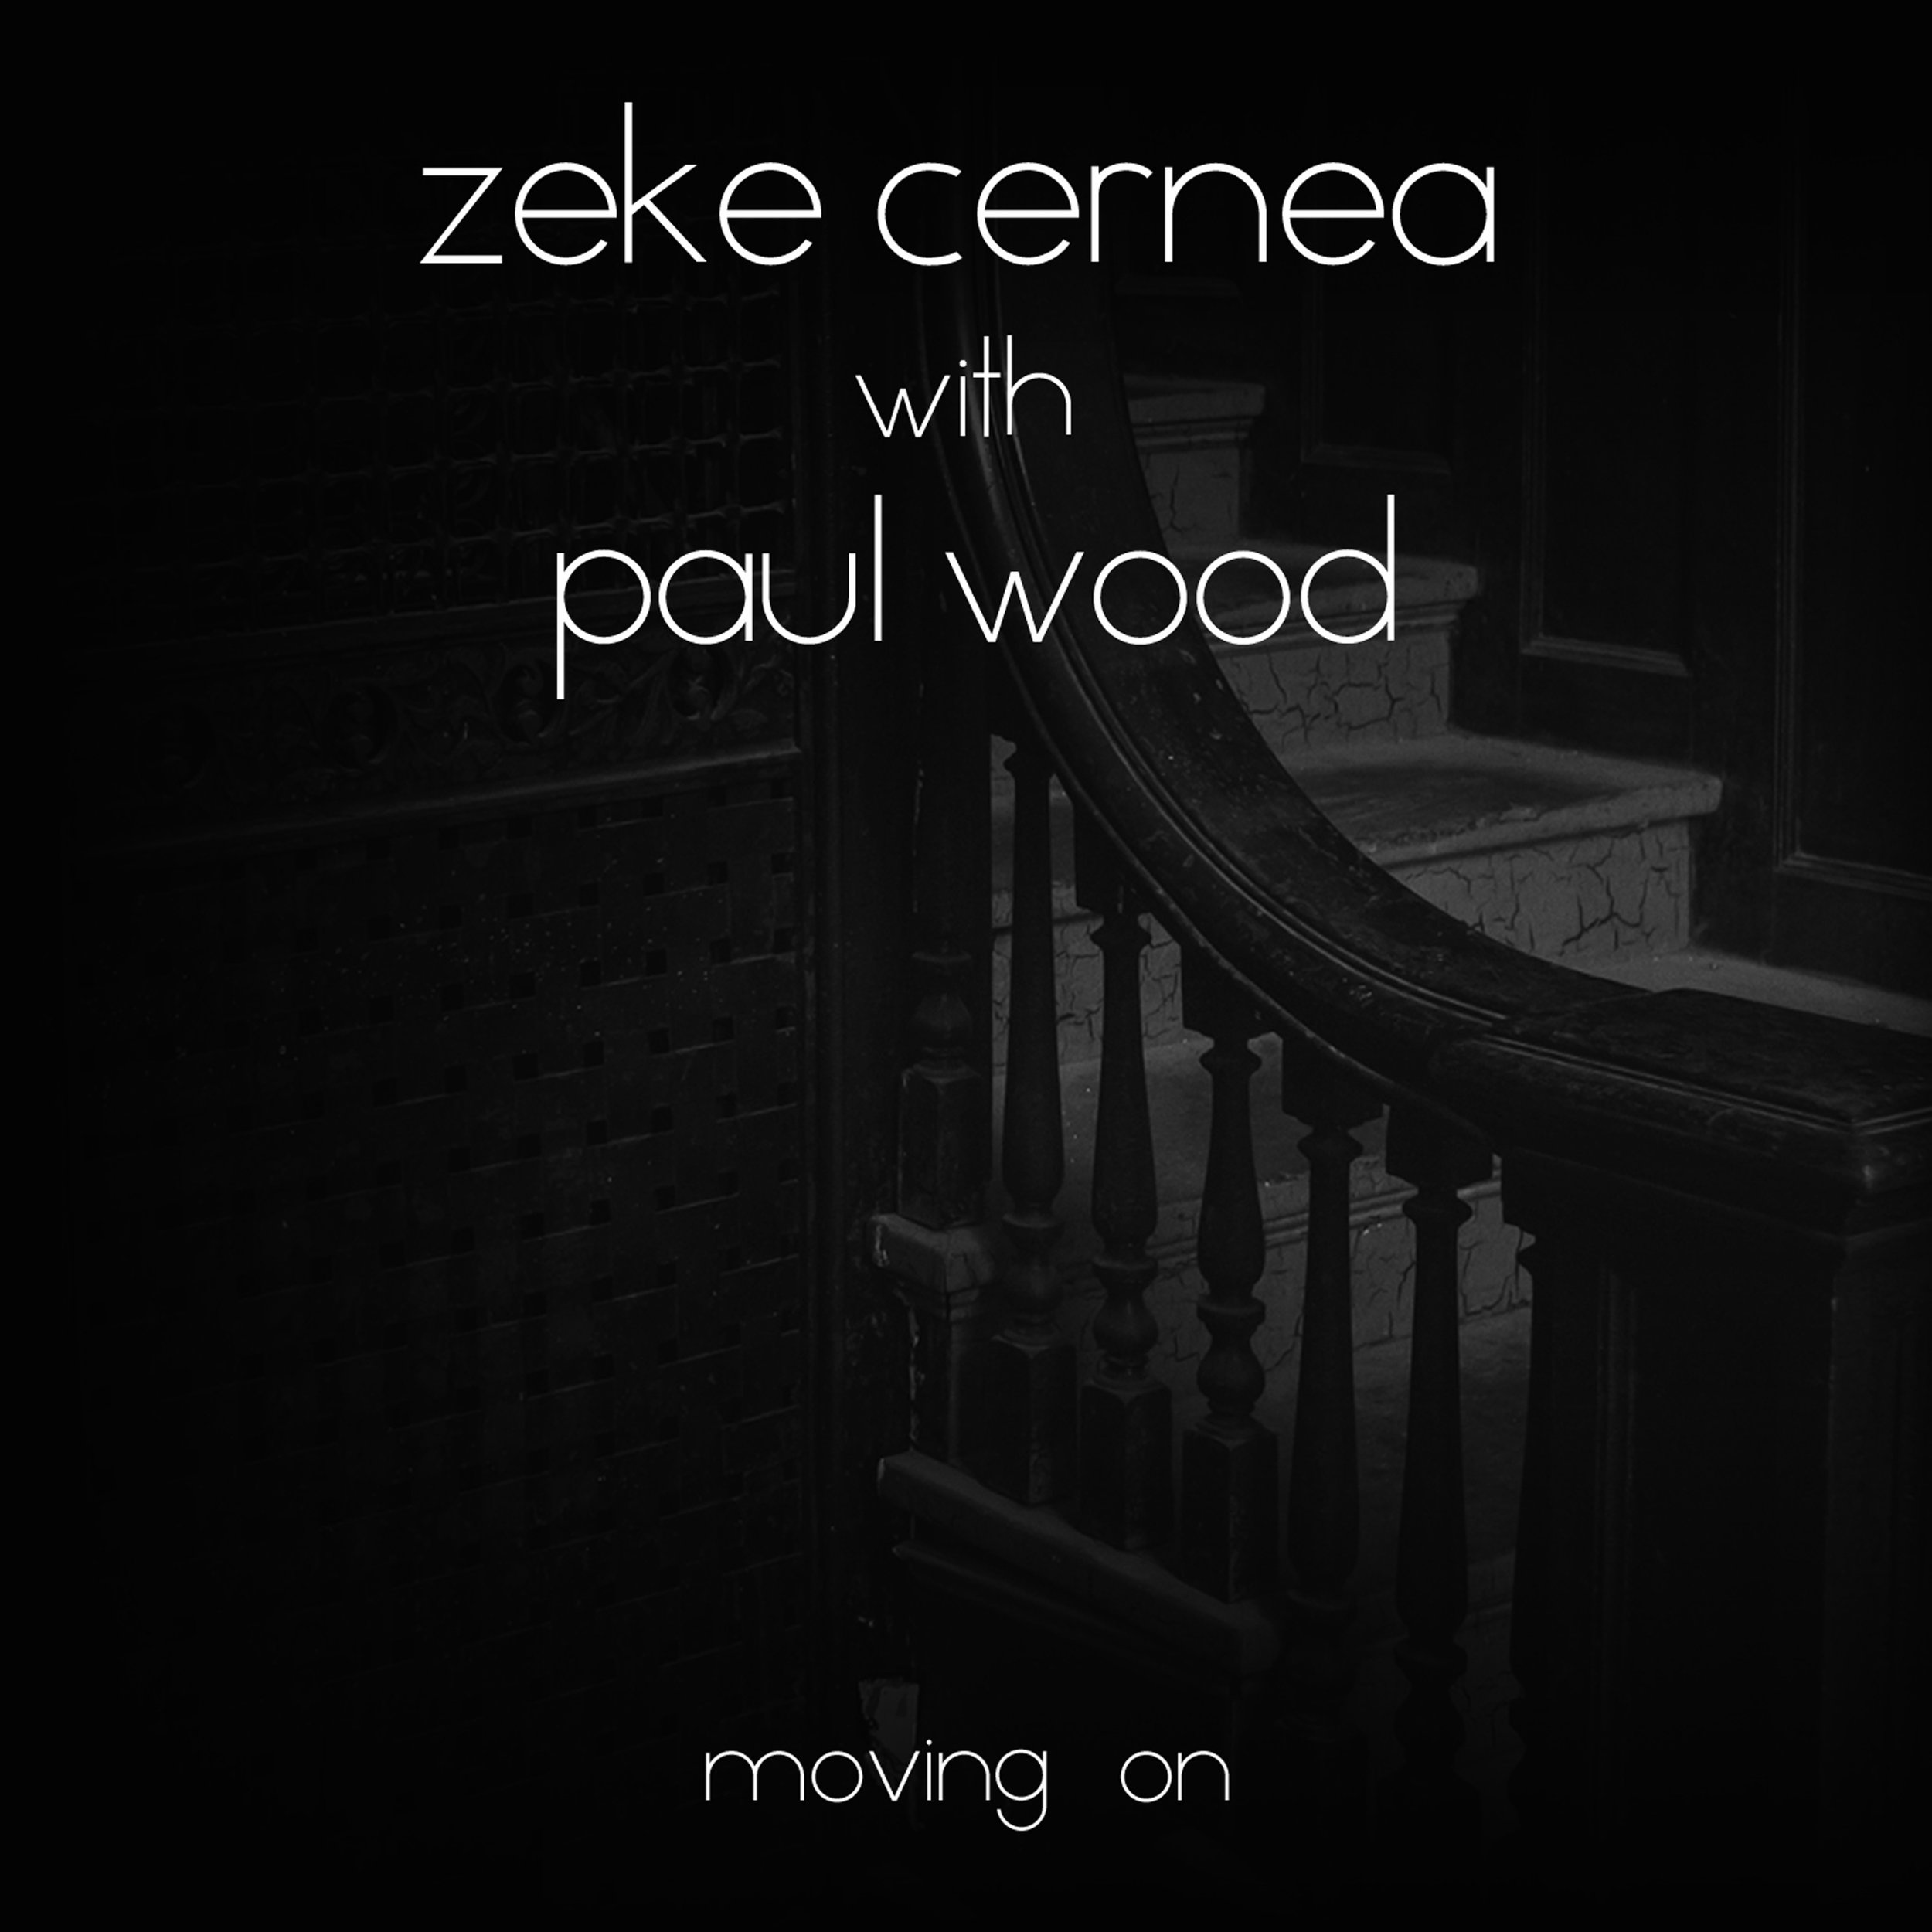 Zeke Cernea with Paul Wood - Moving On - 2016